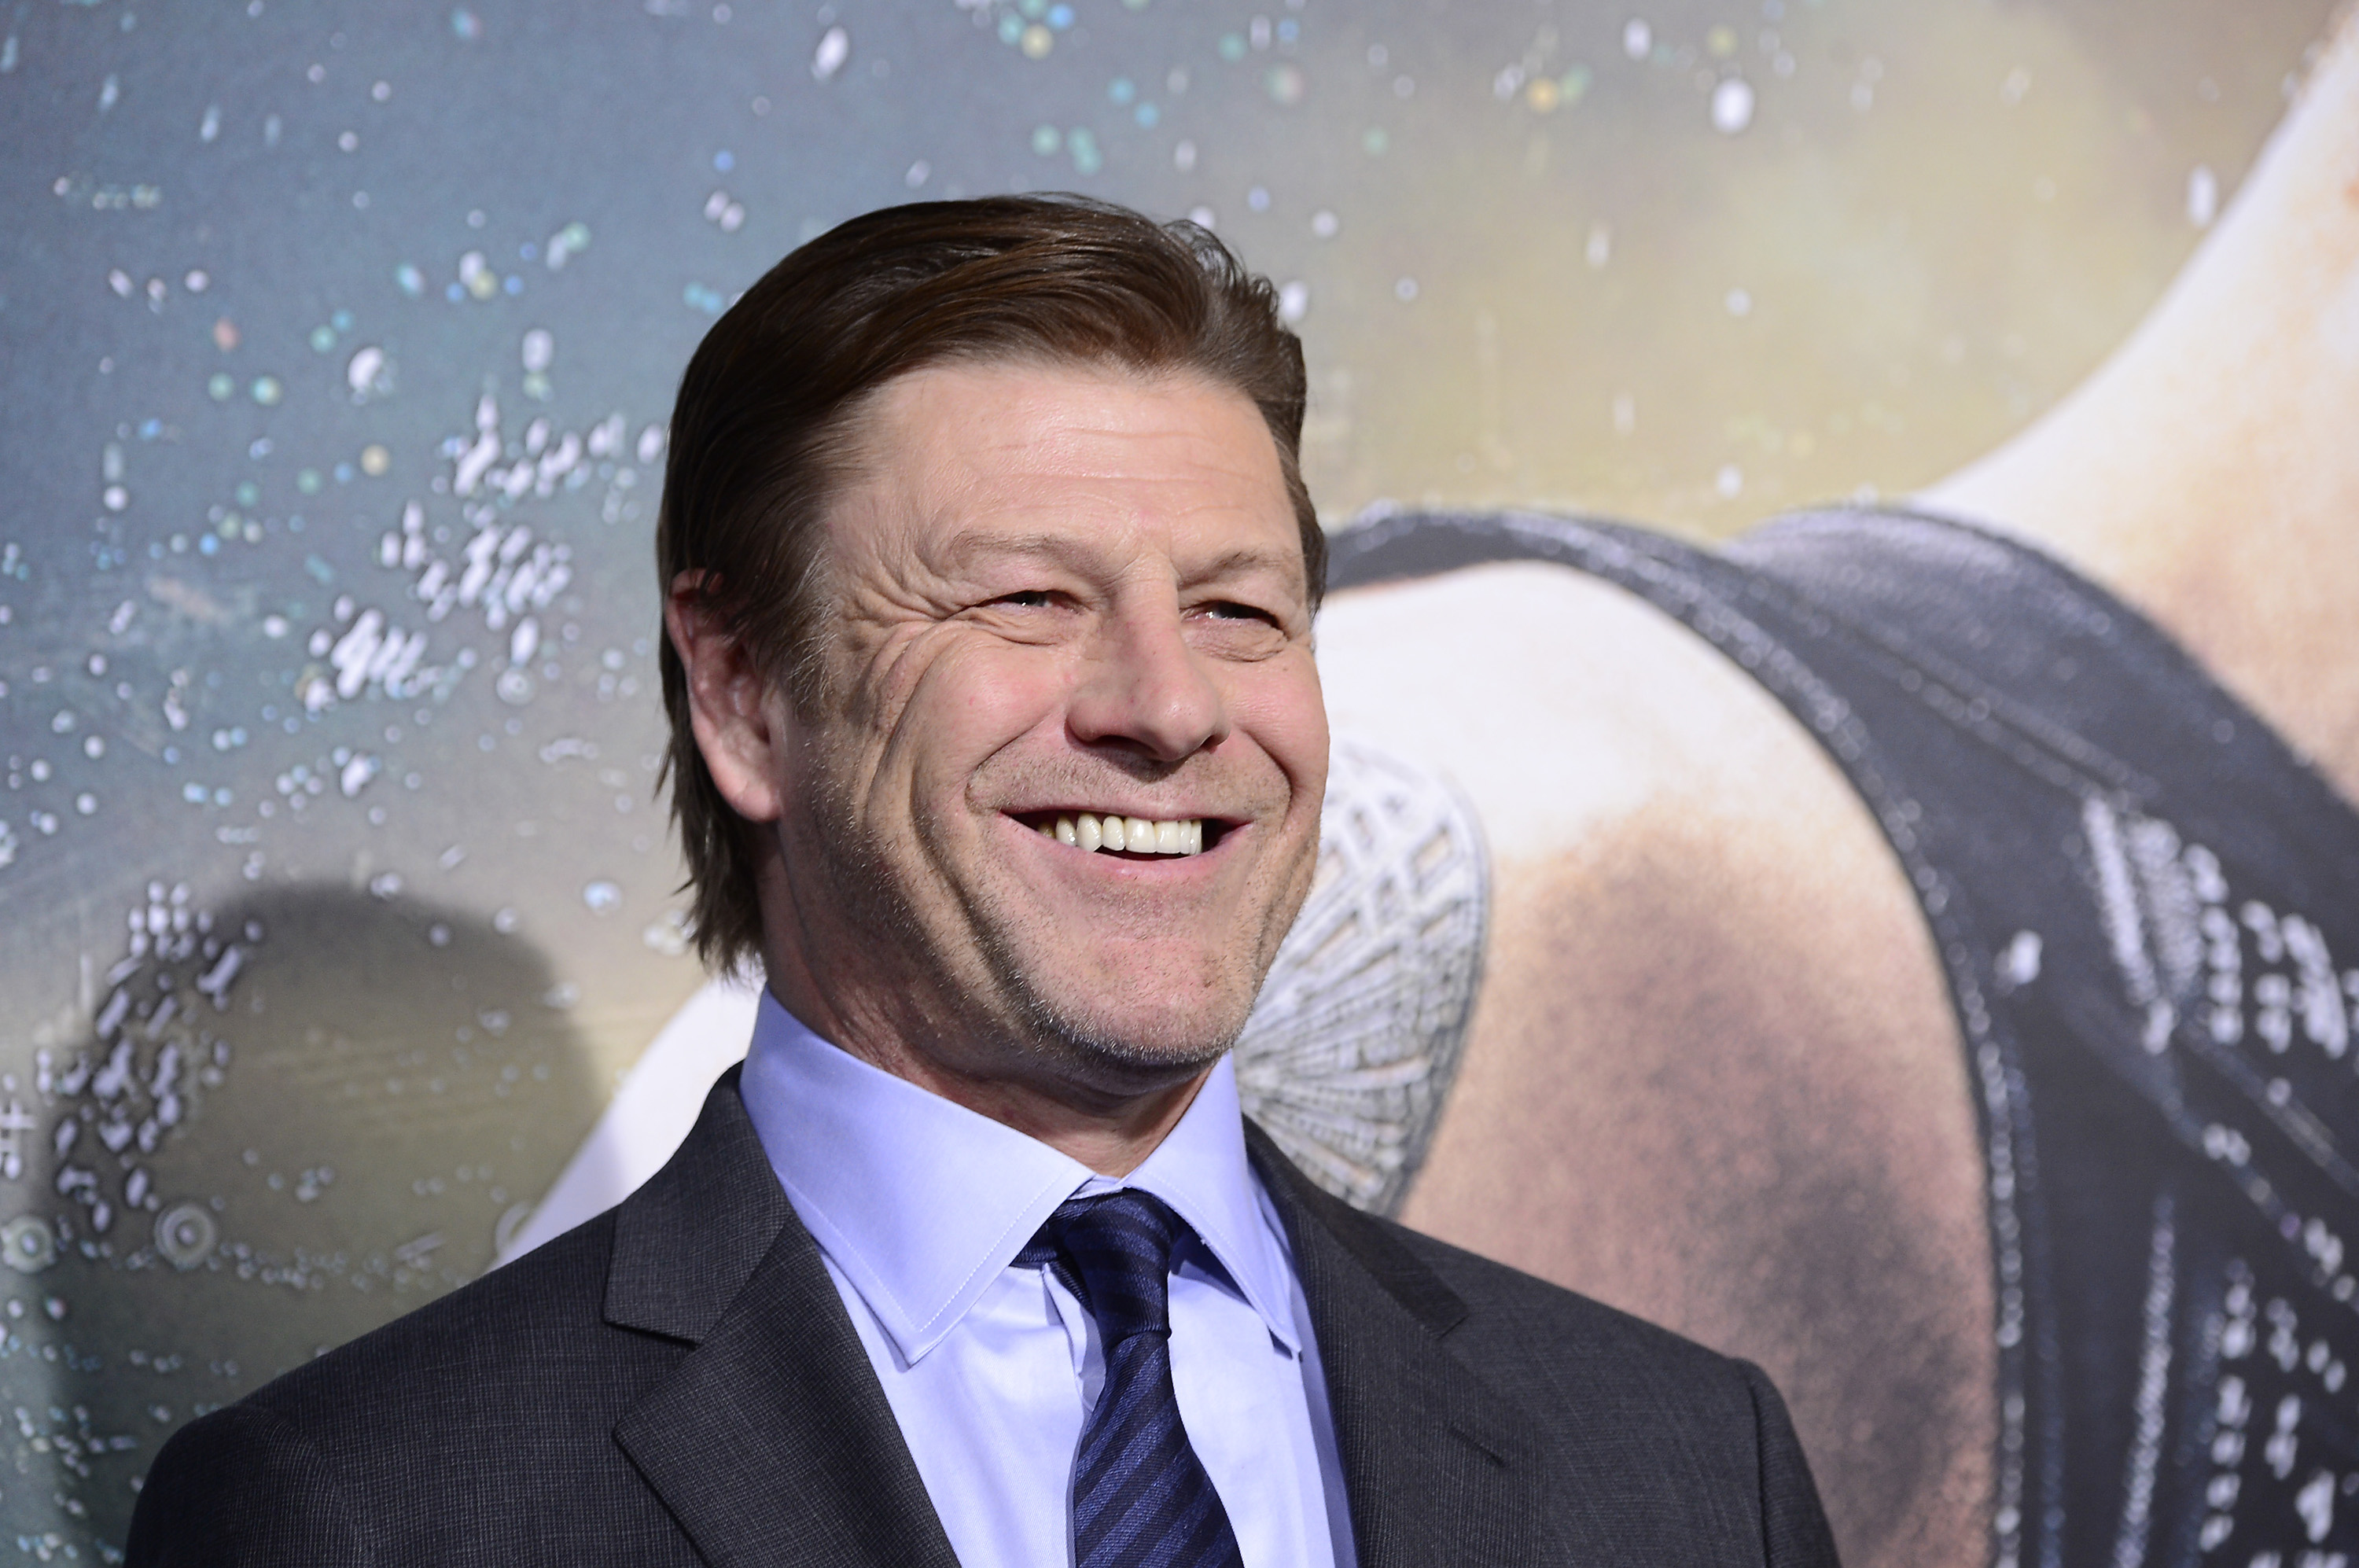 game of thrones star sean bean to star in new series but what